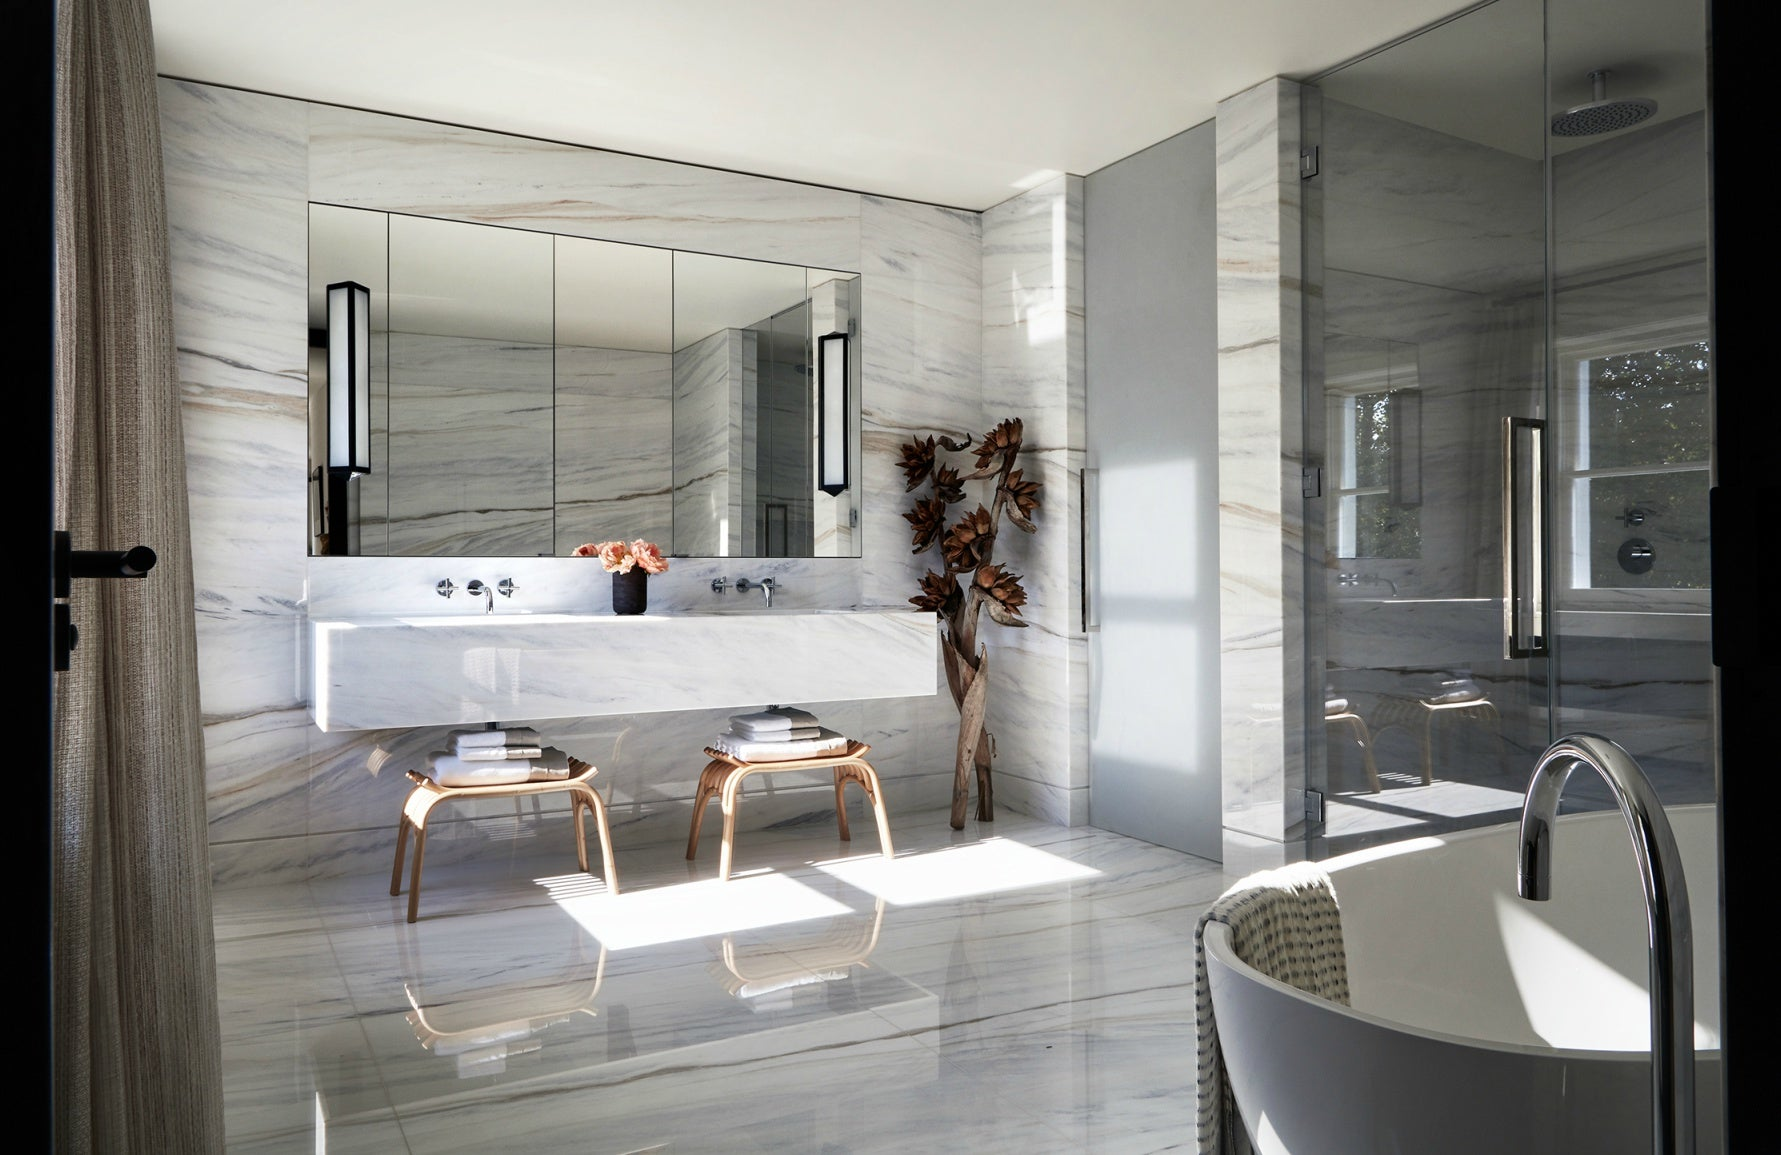 Natalia Miyar interiors | Master bathroom | Read more in LuxDeco's The Luxurist at luxdeco.com